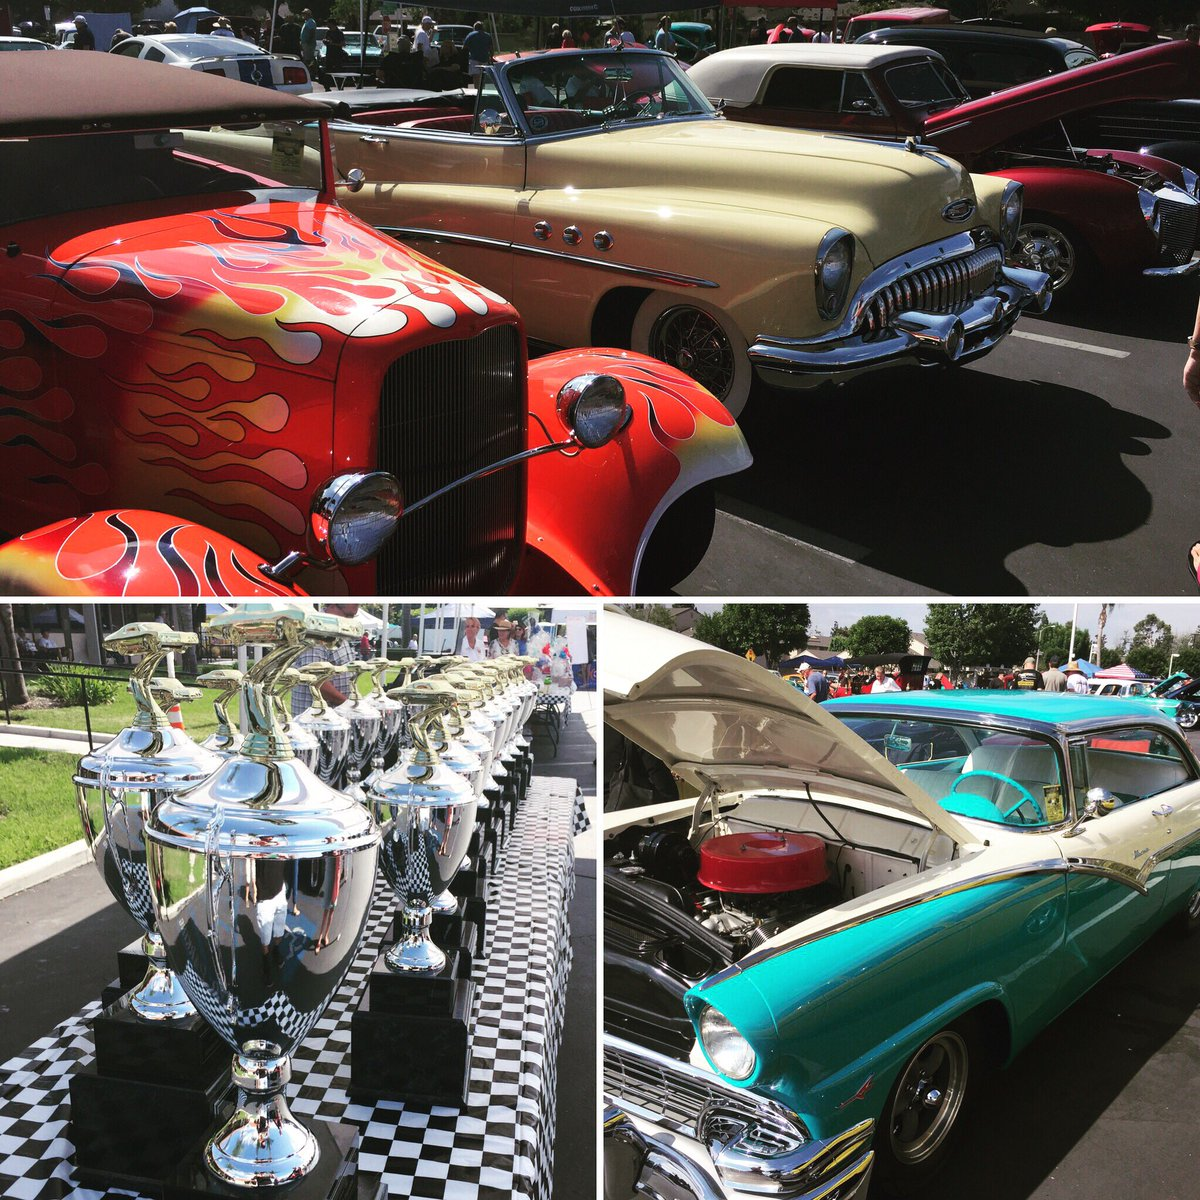 Nathan Yeargin DC On Twitter Head Over To Enderle Center For A - Enderle center car show